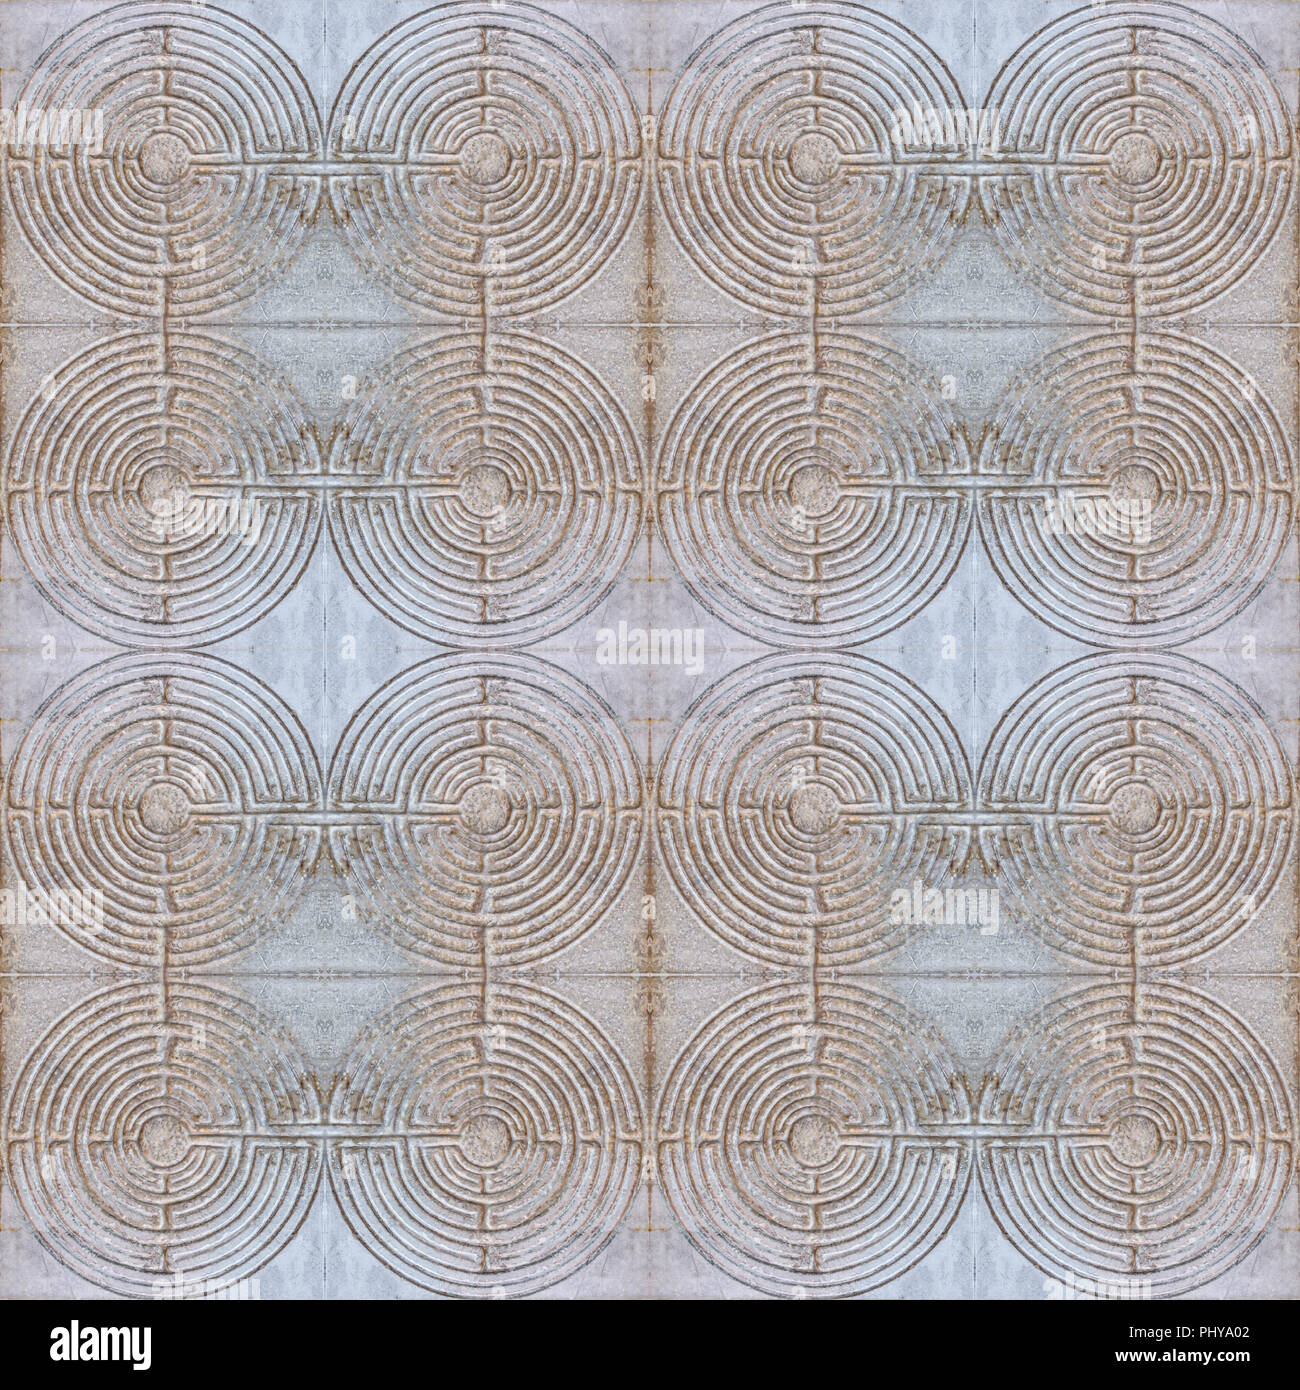 Digital photo manipulation technique labyrinth motif seamless pattern background design in dull mixed colors - Stock Image